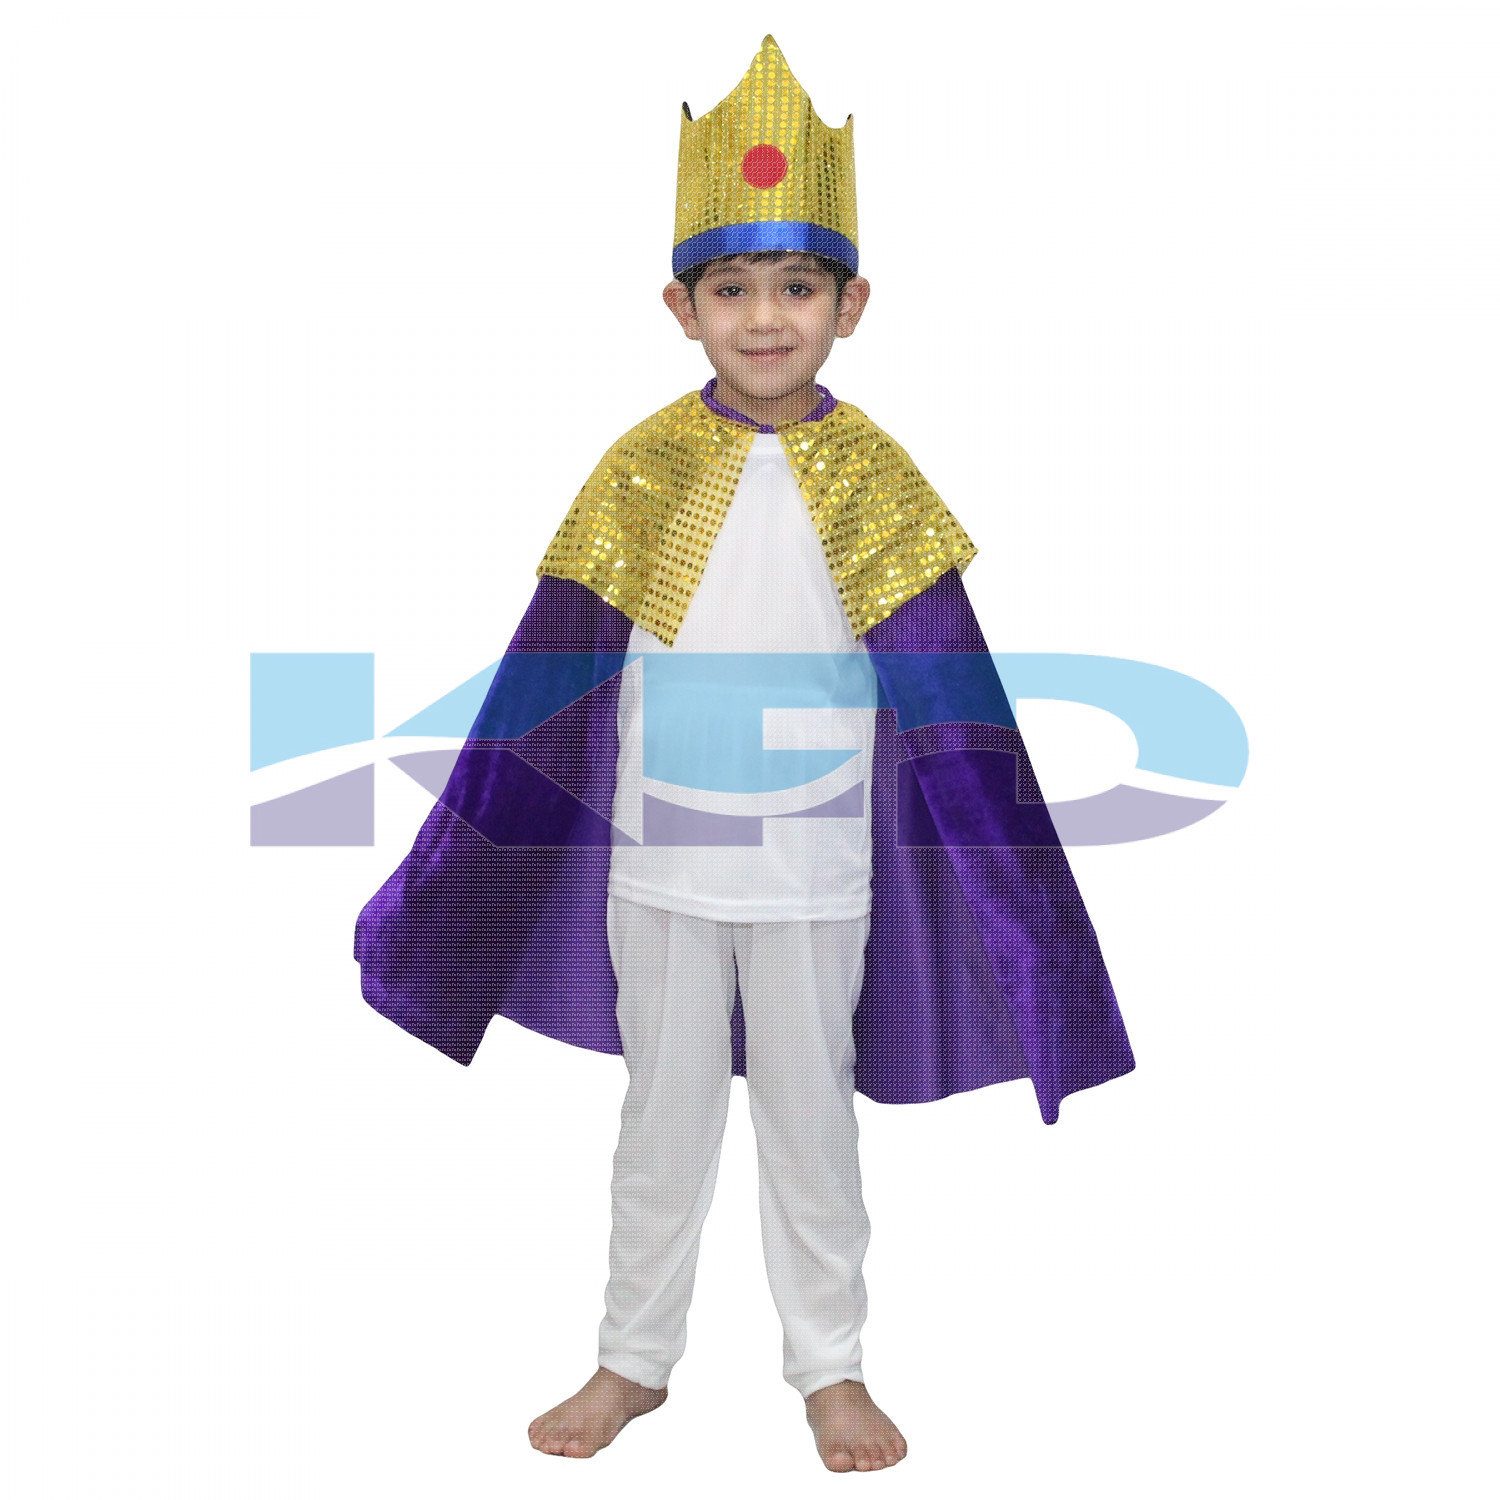 King Robe Purple For Kids/Cloak King Robe/California Costume/For Kids Annual function/Theme Party/Competition/Stage Shows/Birthday Party Dress